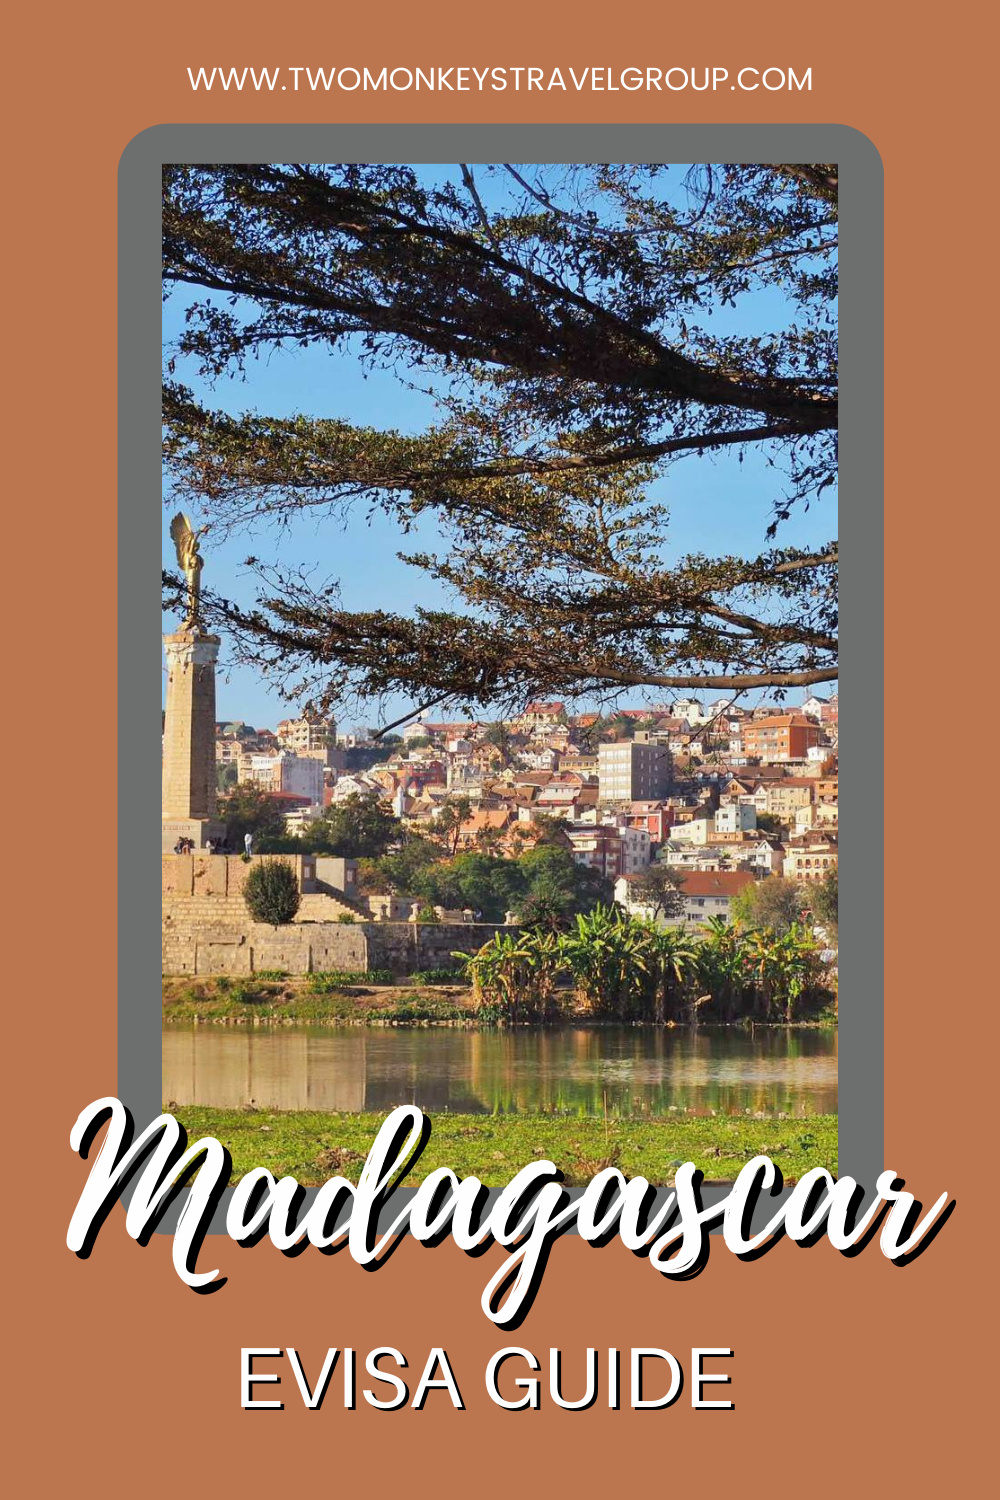 How to Get a Madagascar EVisa for Filipinos and Other Nationalities